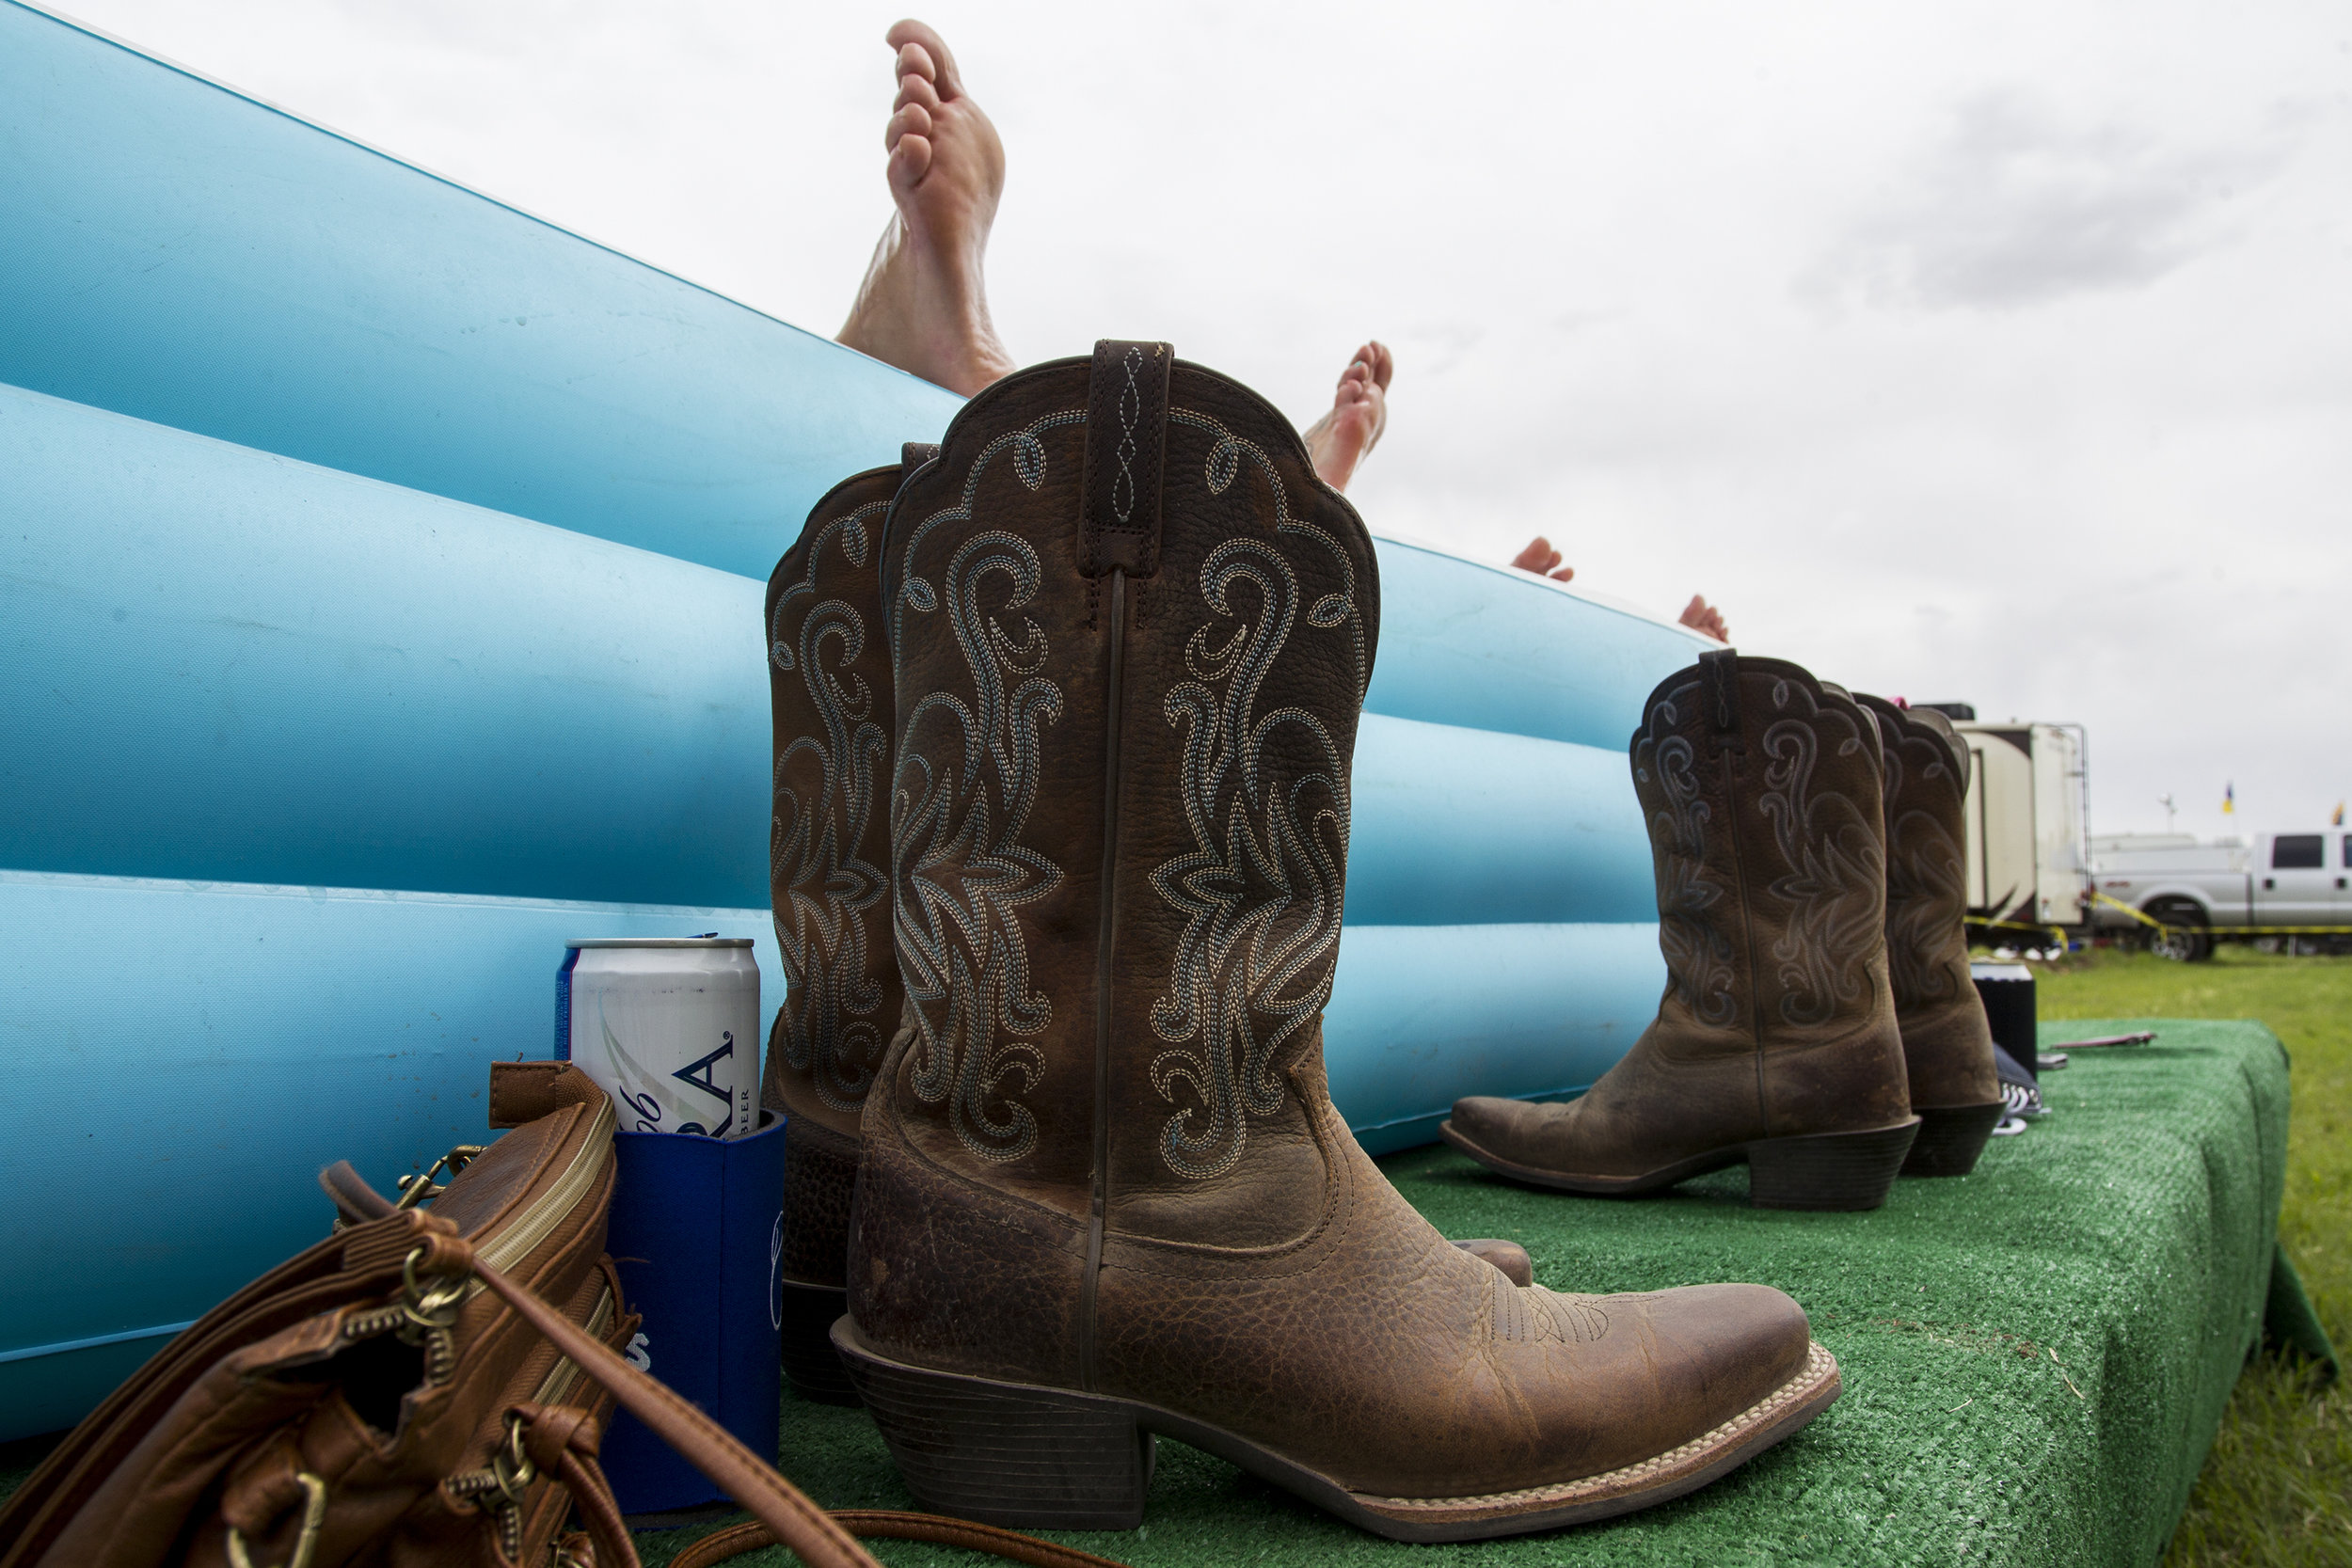 Festival-goers relax in a pool at a campsite during Country Thunder in Florence, Ariz.